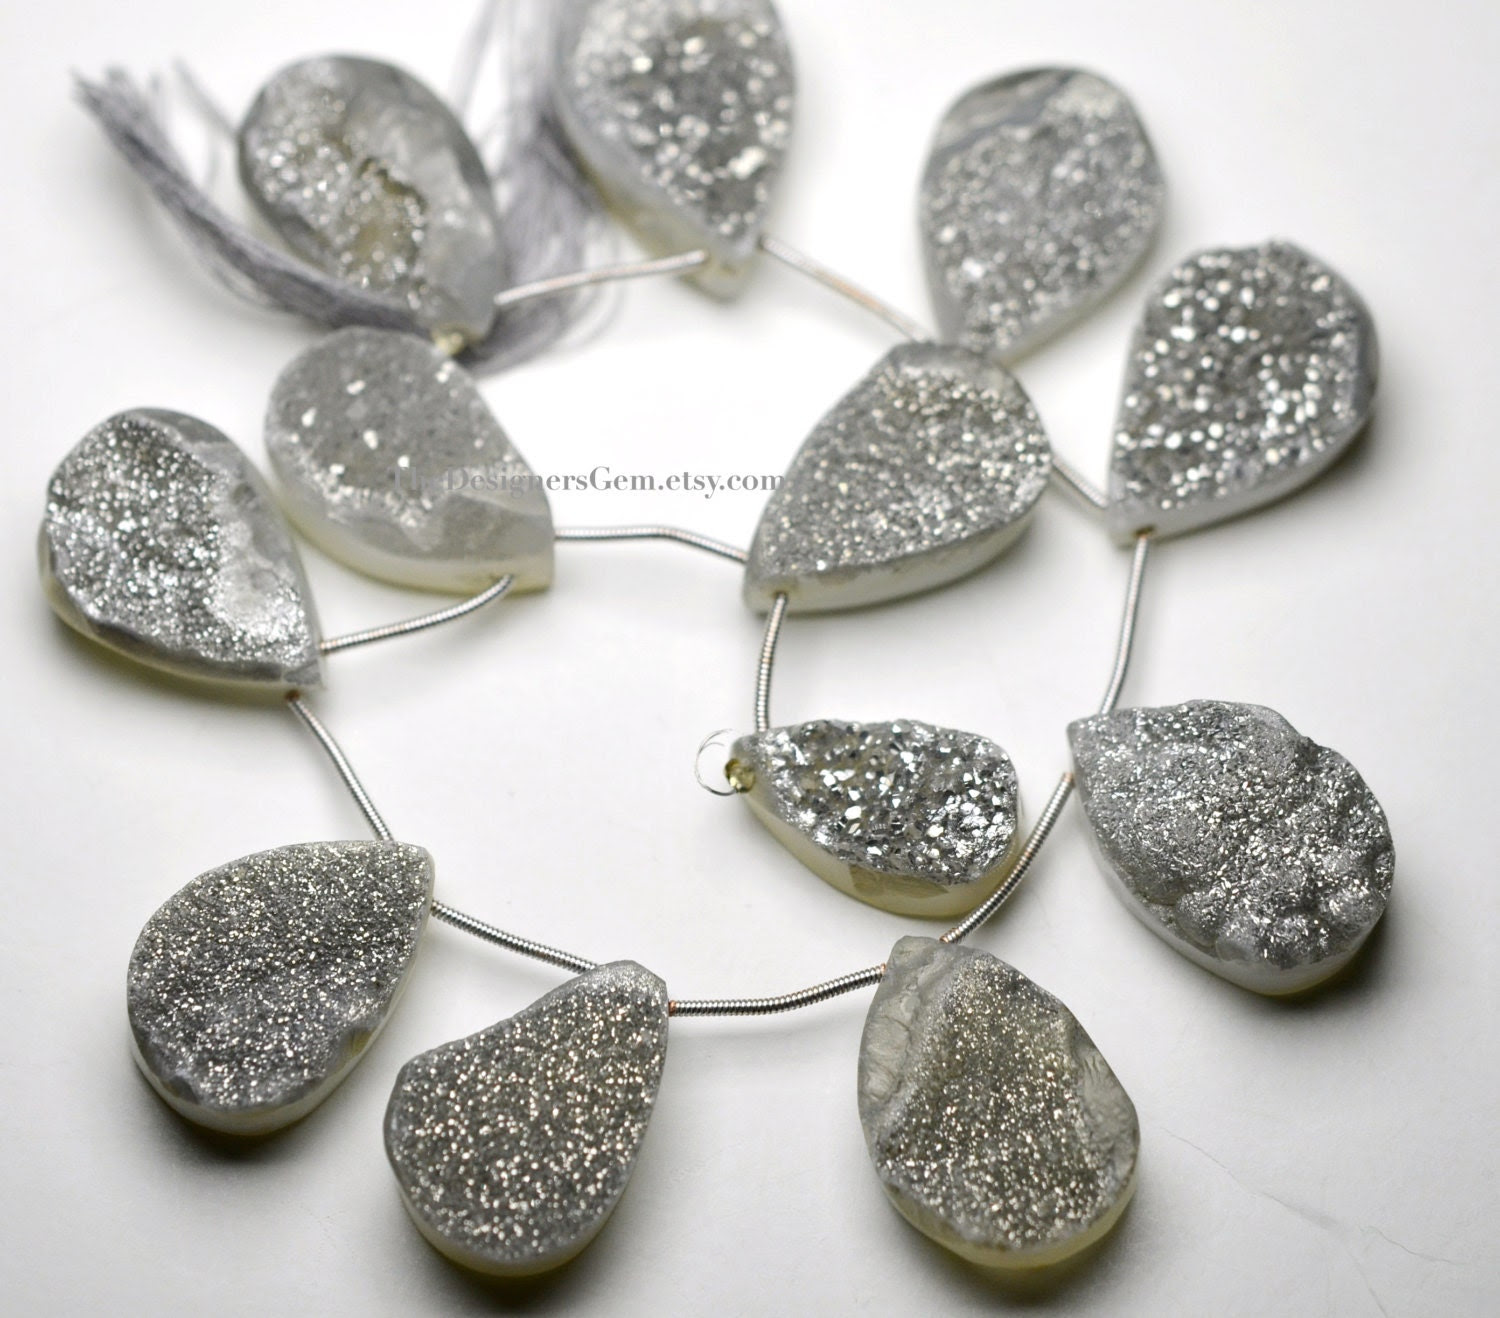 Sparkling Gray Silver Druzy Top Drilled Pear Shape Briolettes 23 x 14mm to  29 x 19mm -1/2 STRAND - TheDesignersGem